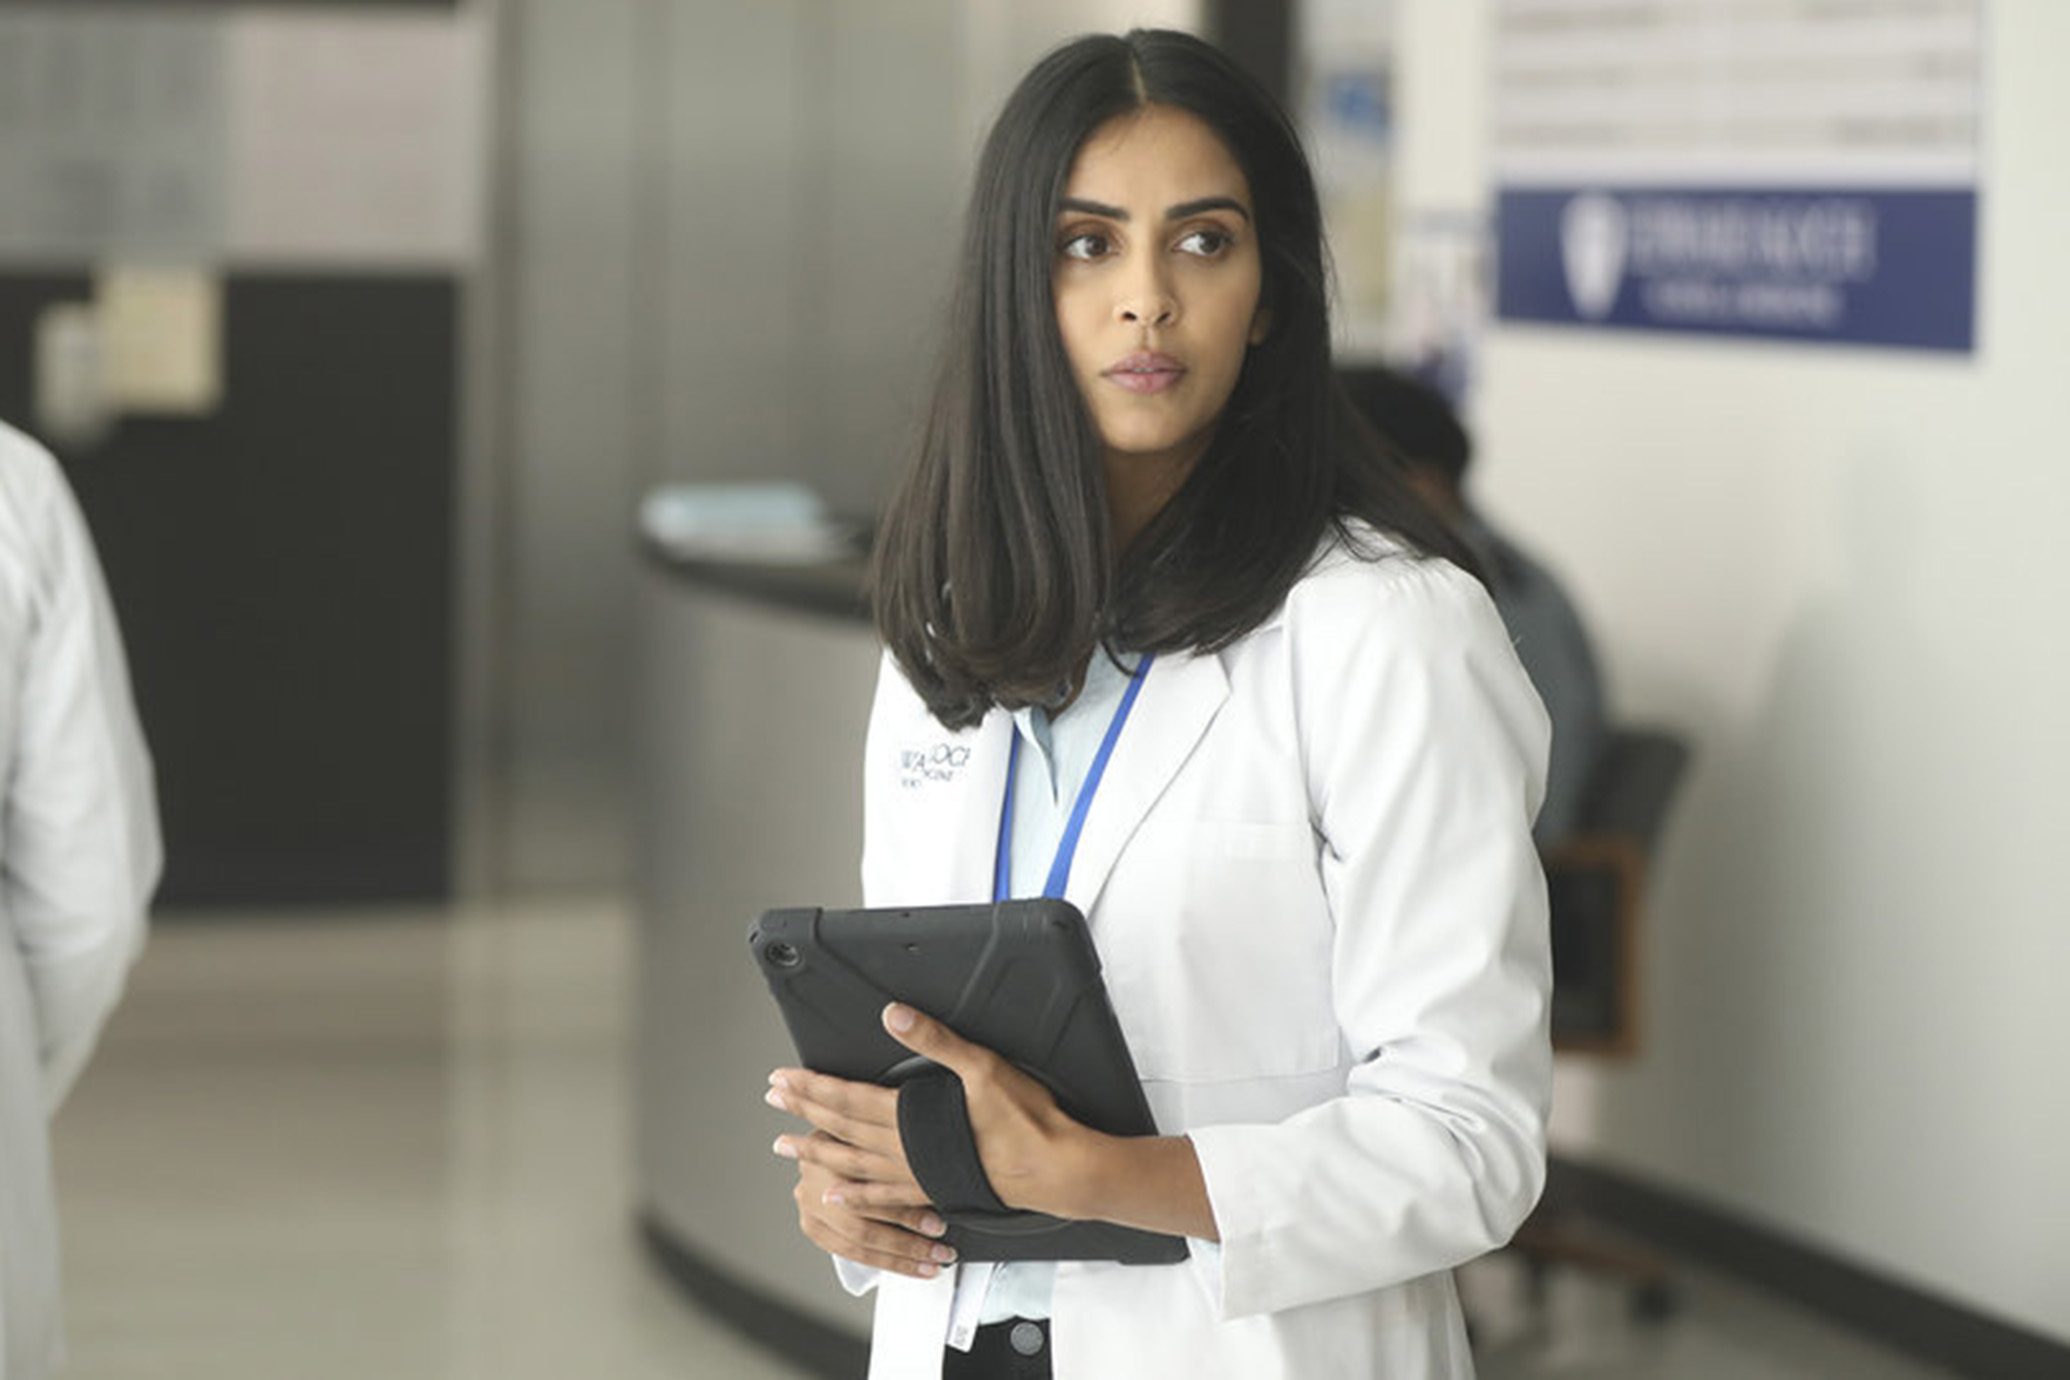 INTERVIEW: Parveen Kaur Reveals Saanvi Has 'Trauma' to Work Through on Manifest Season 3